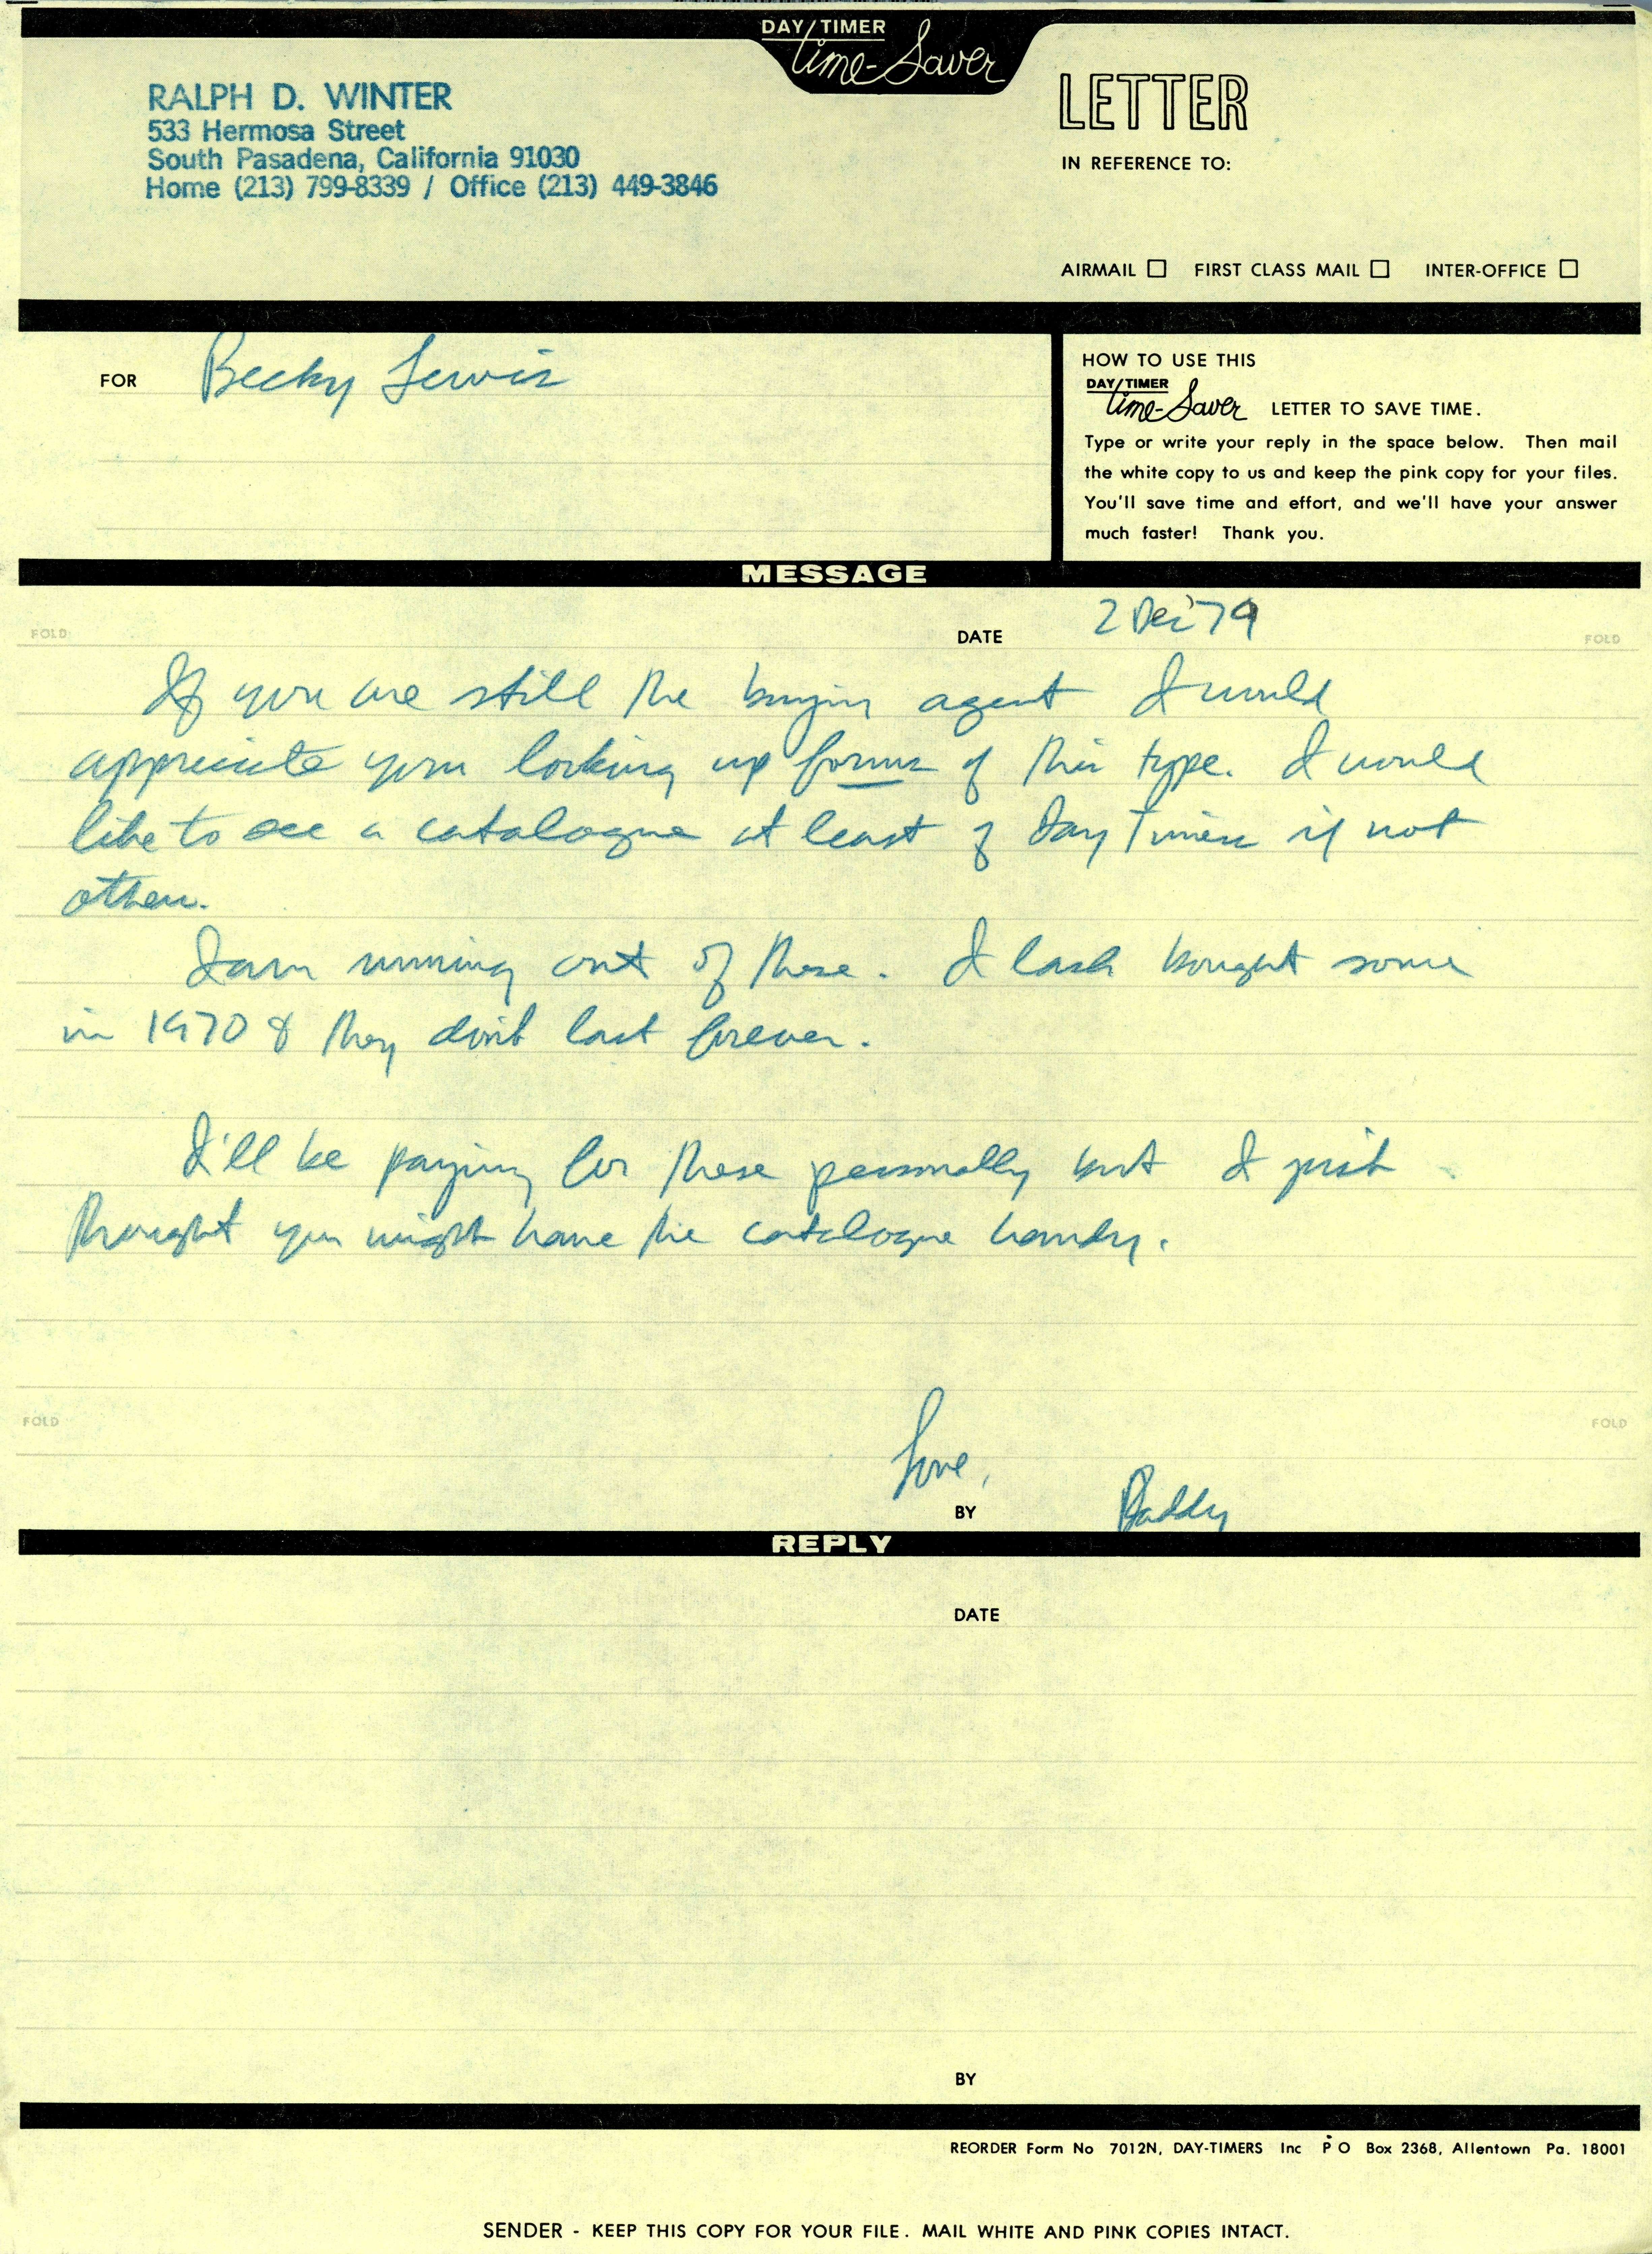 RDW to Becky Lewis Note 12 2 1979